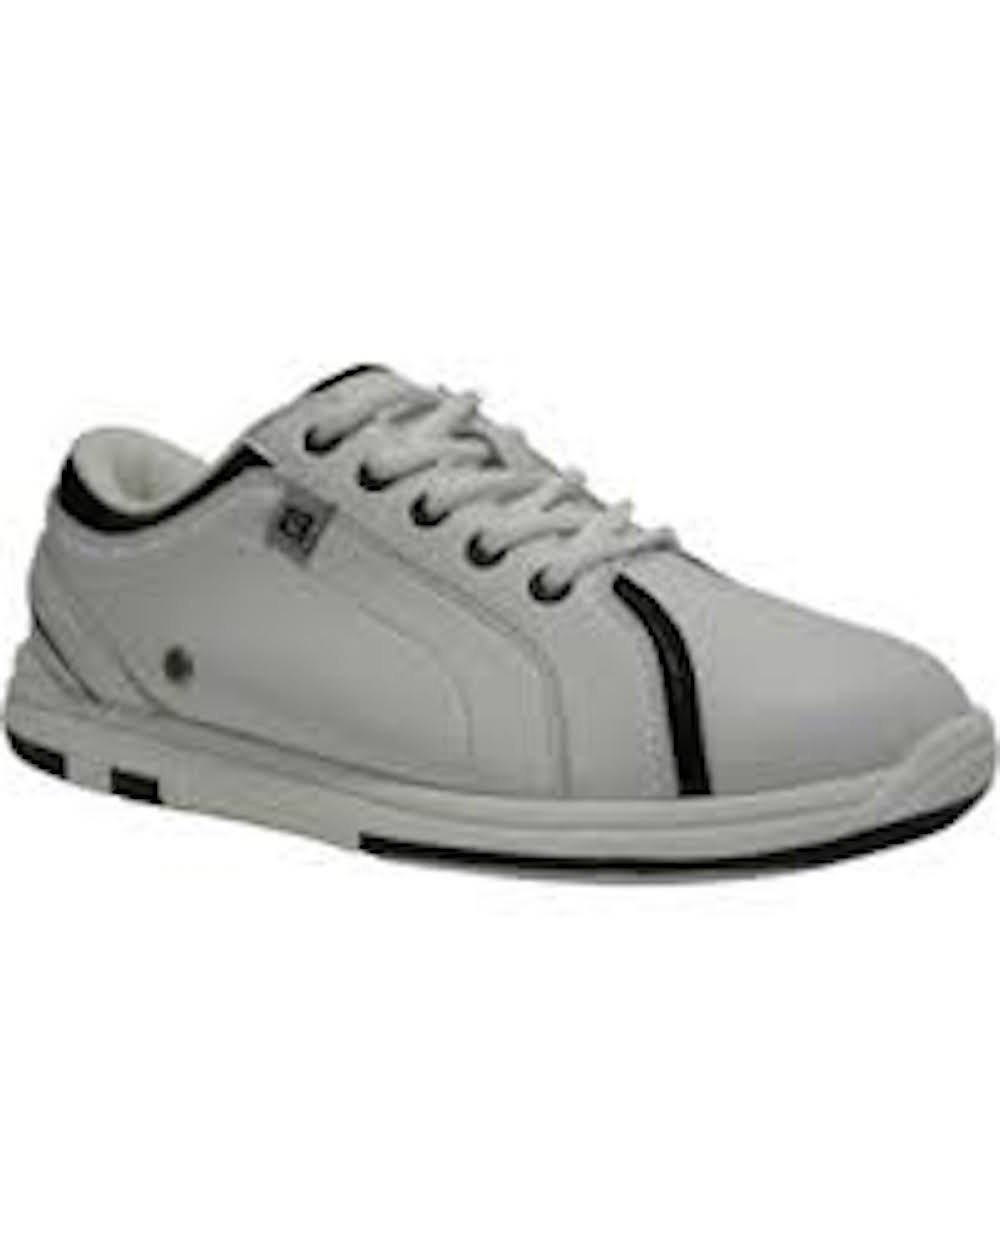 Brunswick Women's Rave White/Black Bowling Shoes Size 8.5